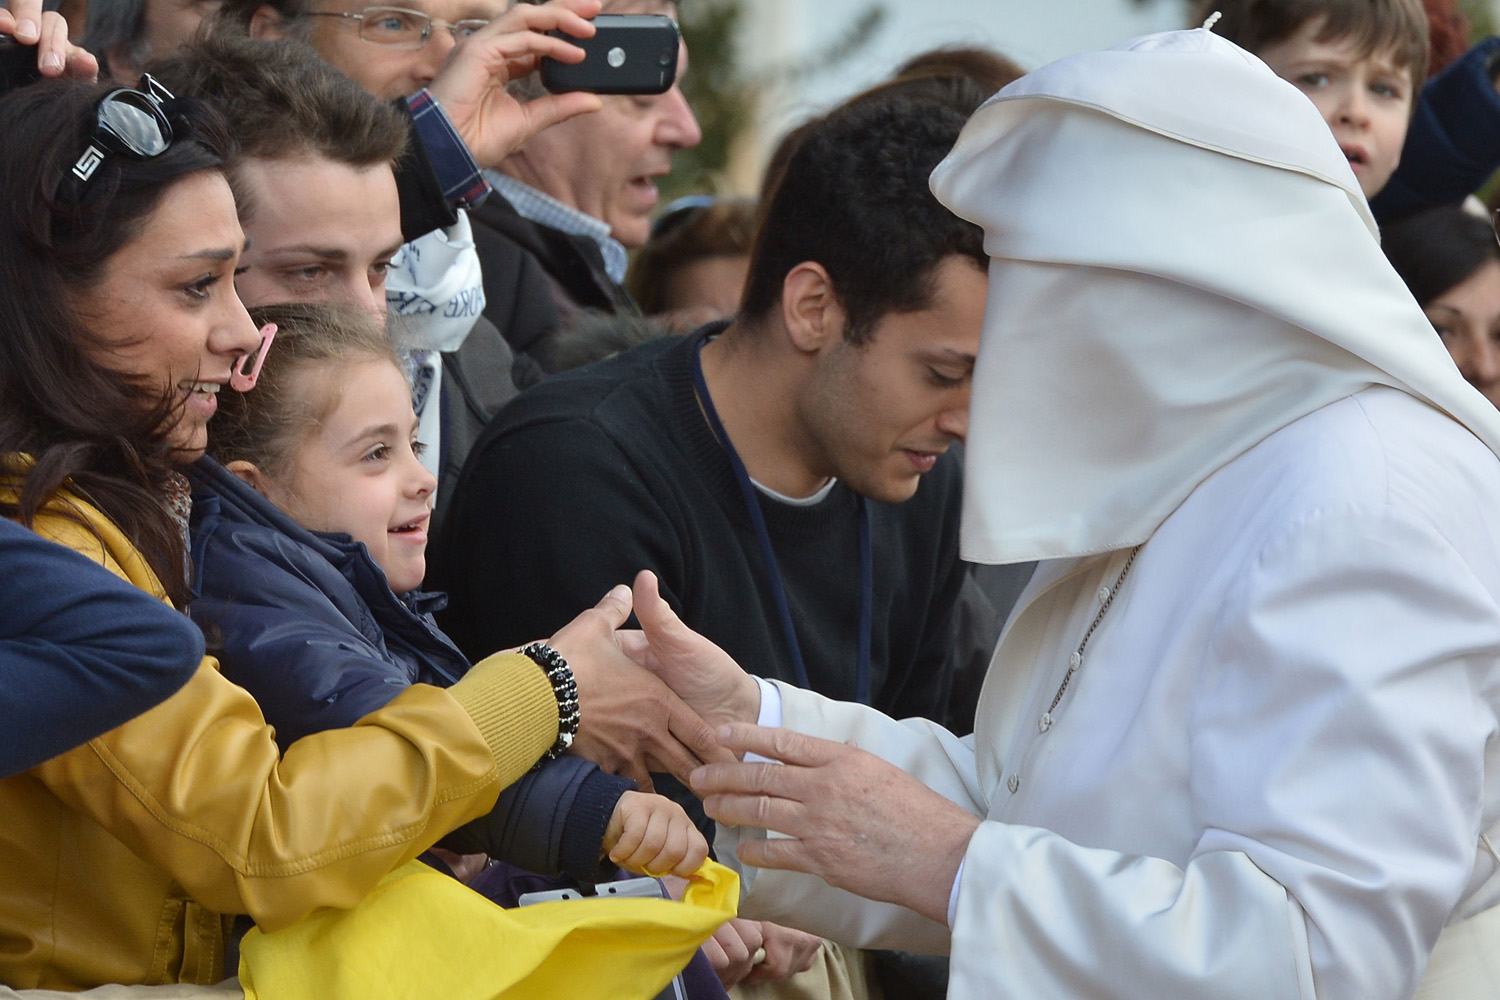 A wind gust lifts Pope Francis's mantle as he arrives at the traditional Washing of the Feet during Holy Thursday.